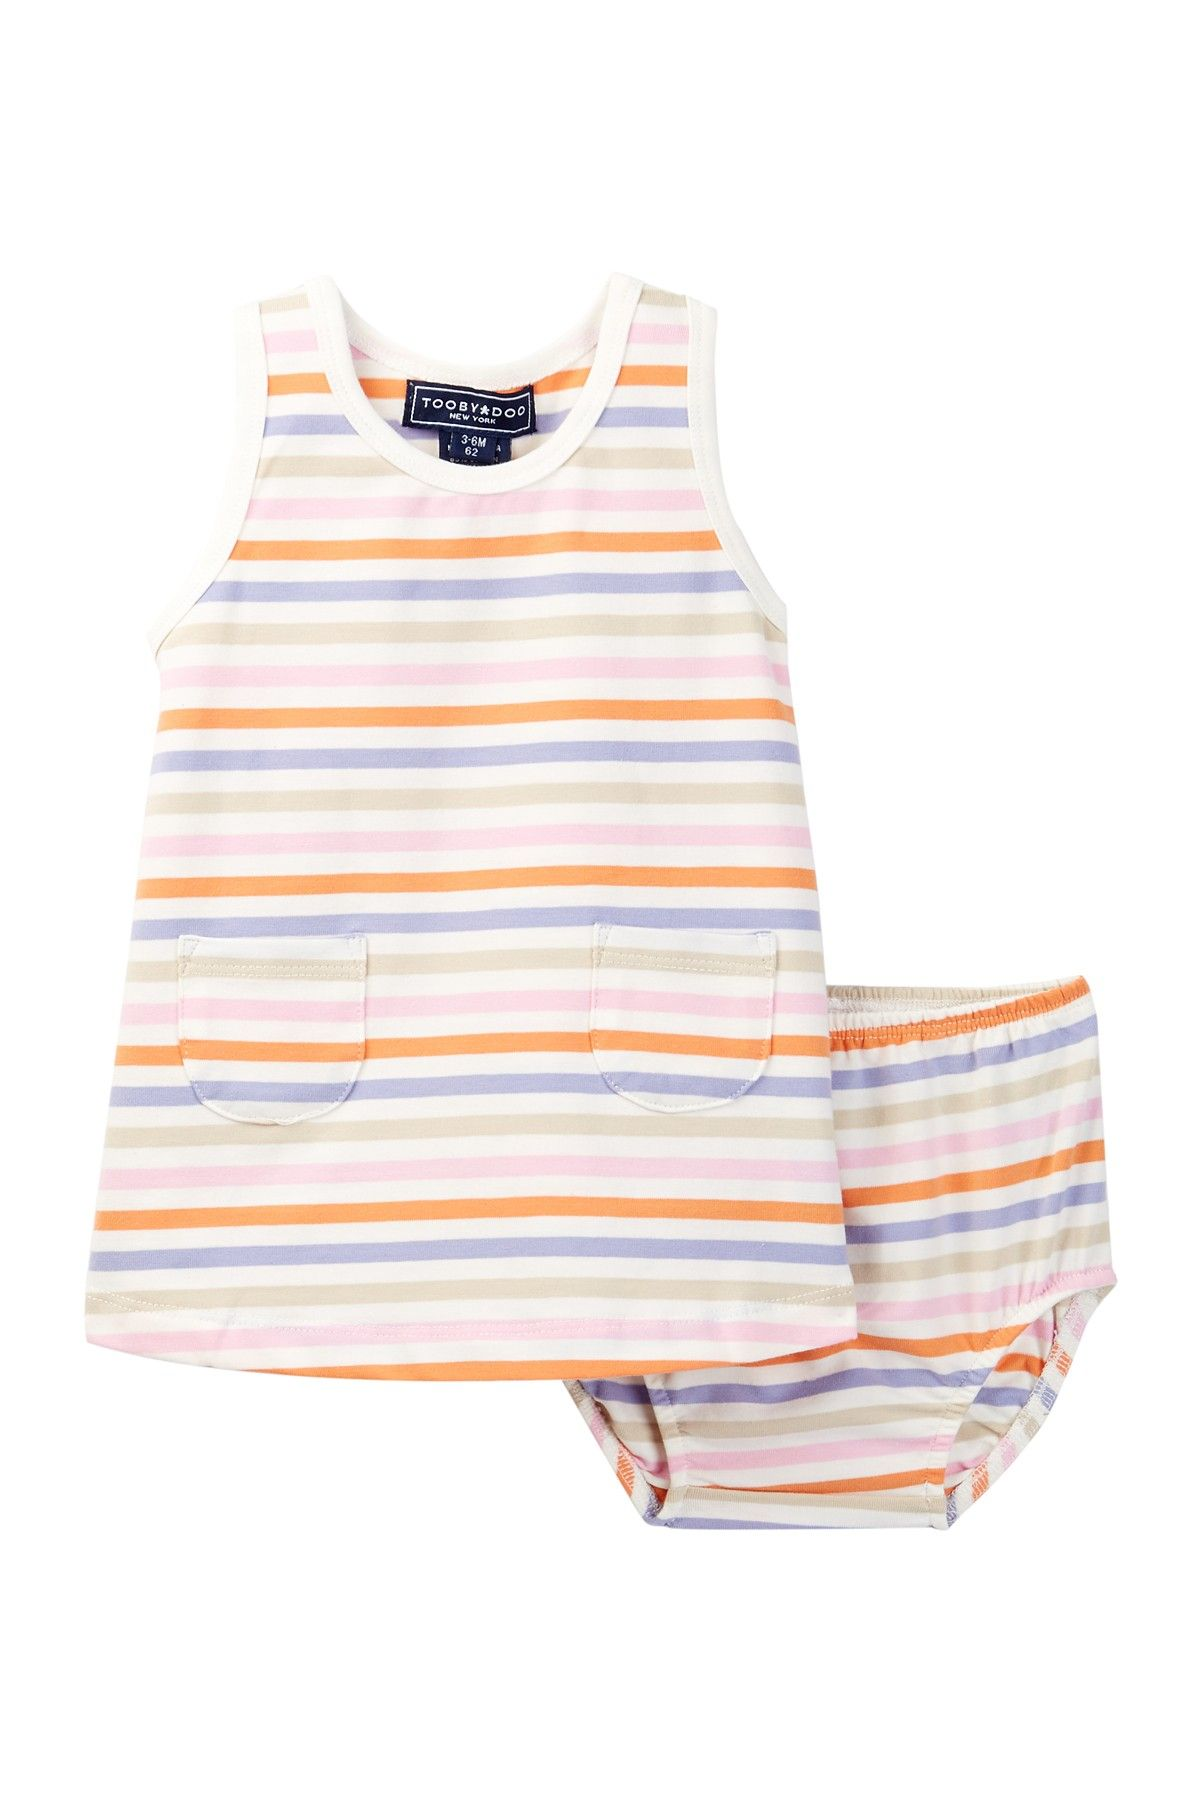 Toobydoo Pastel Striped Dress Baby Girls at Nordstrom Rack Free